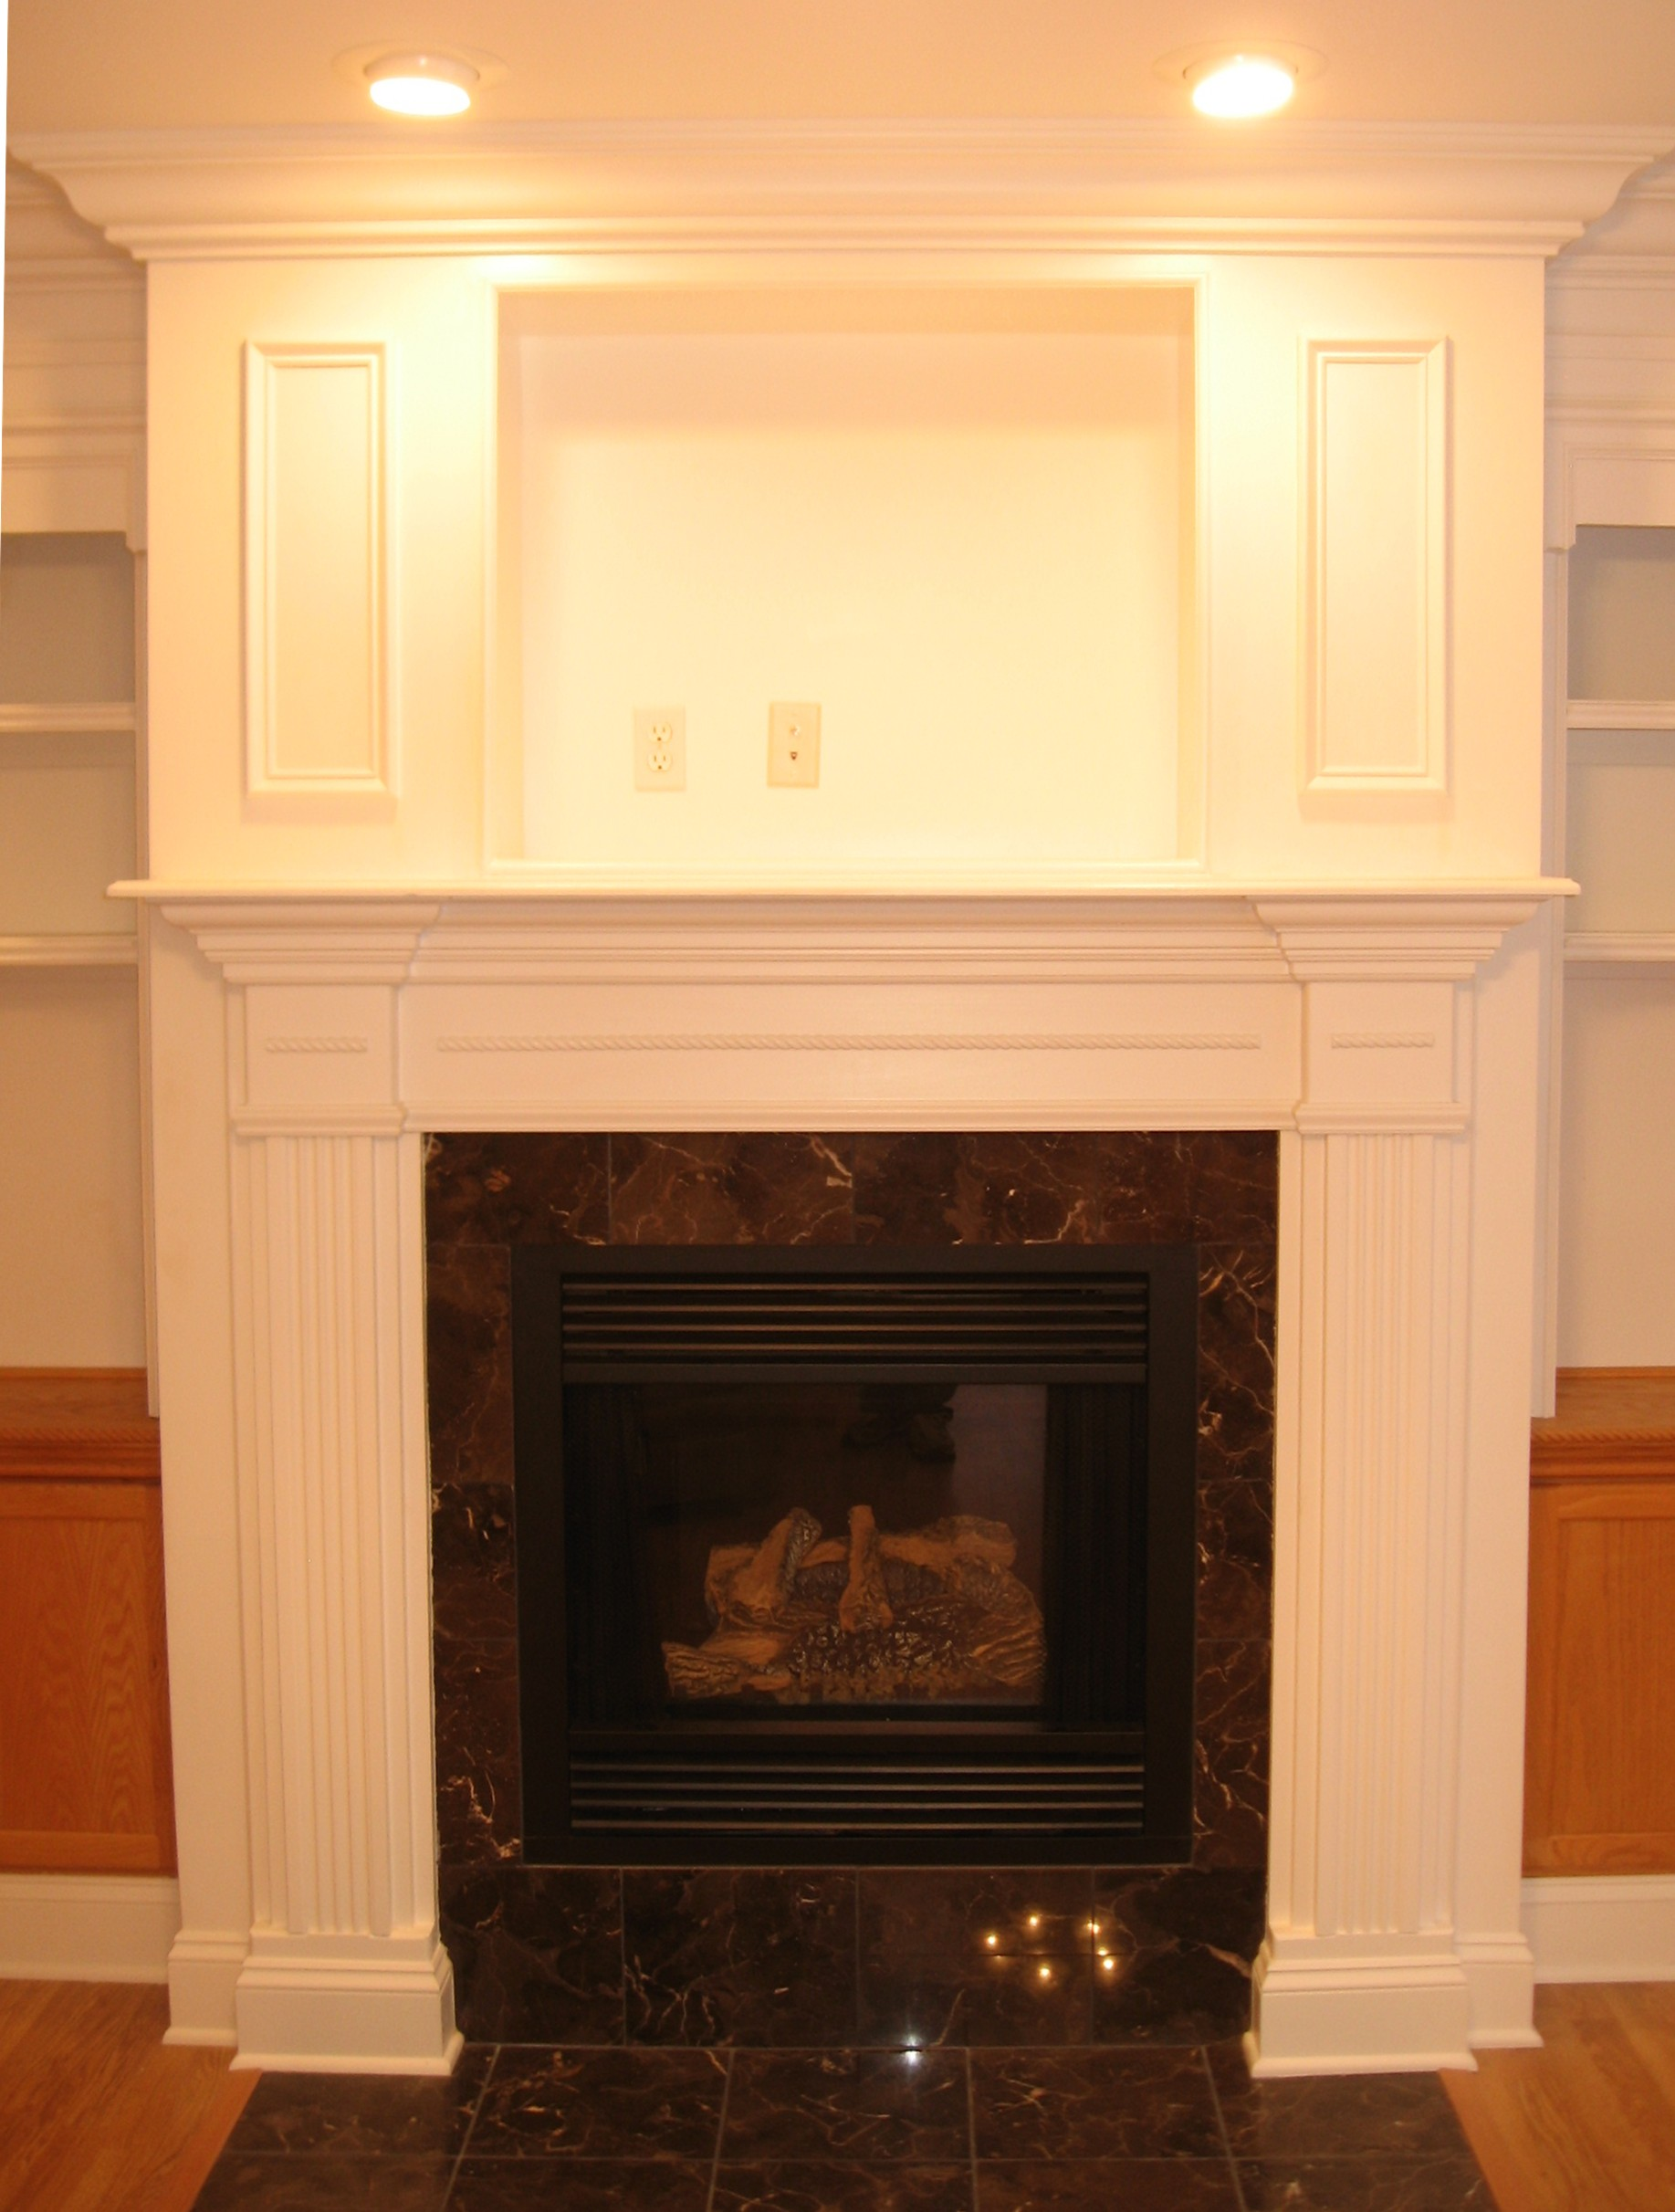 Fireplace surround kits ideas homesfeed for Wood fireplace surround designs